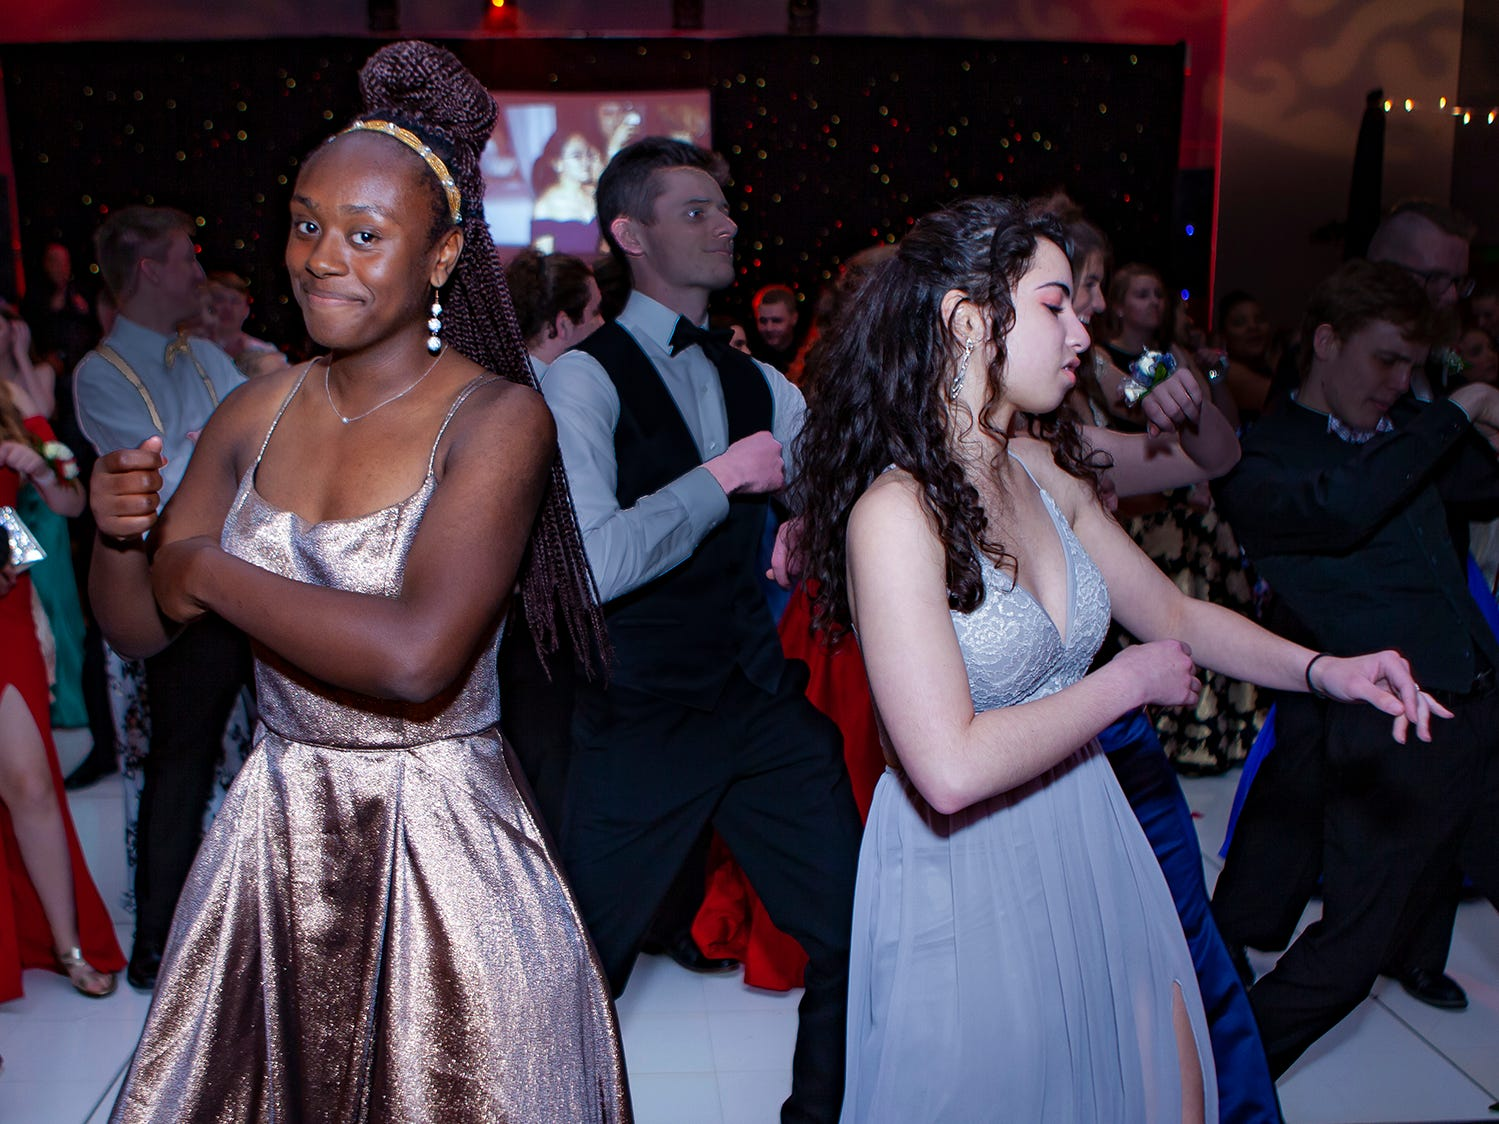 Autumn Jones and Katelyn Paniagua dance at Riverdale's prom, held Saturday, April 27, 2019 at MTSU's Student Union Building.